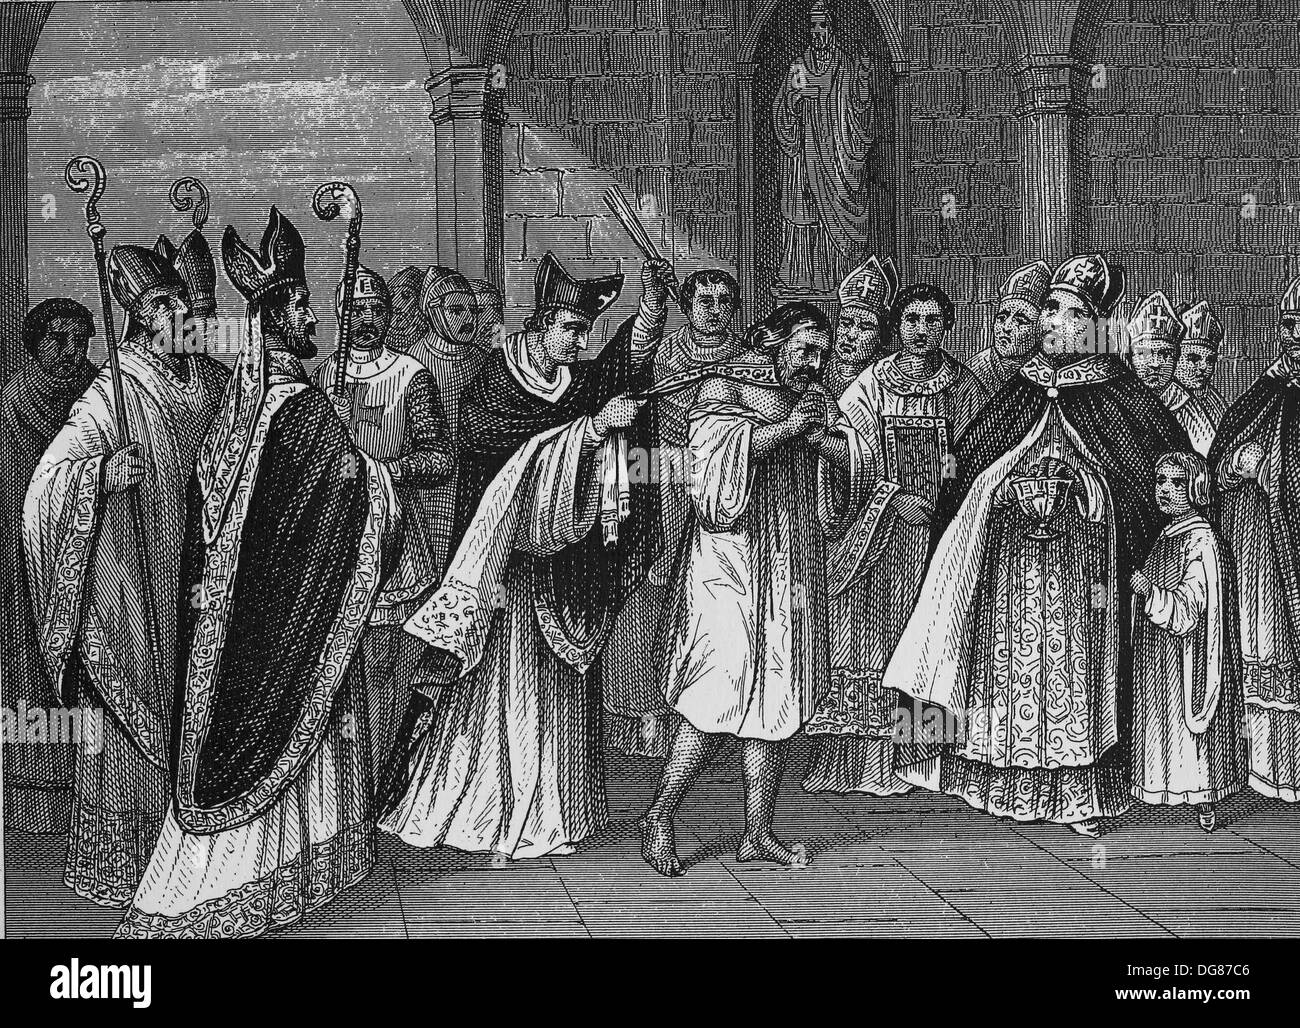 Middle Ages. Clerical punishment of French princes in the 13th century. Engraving - Stock Image